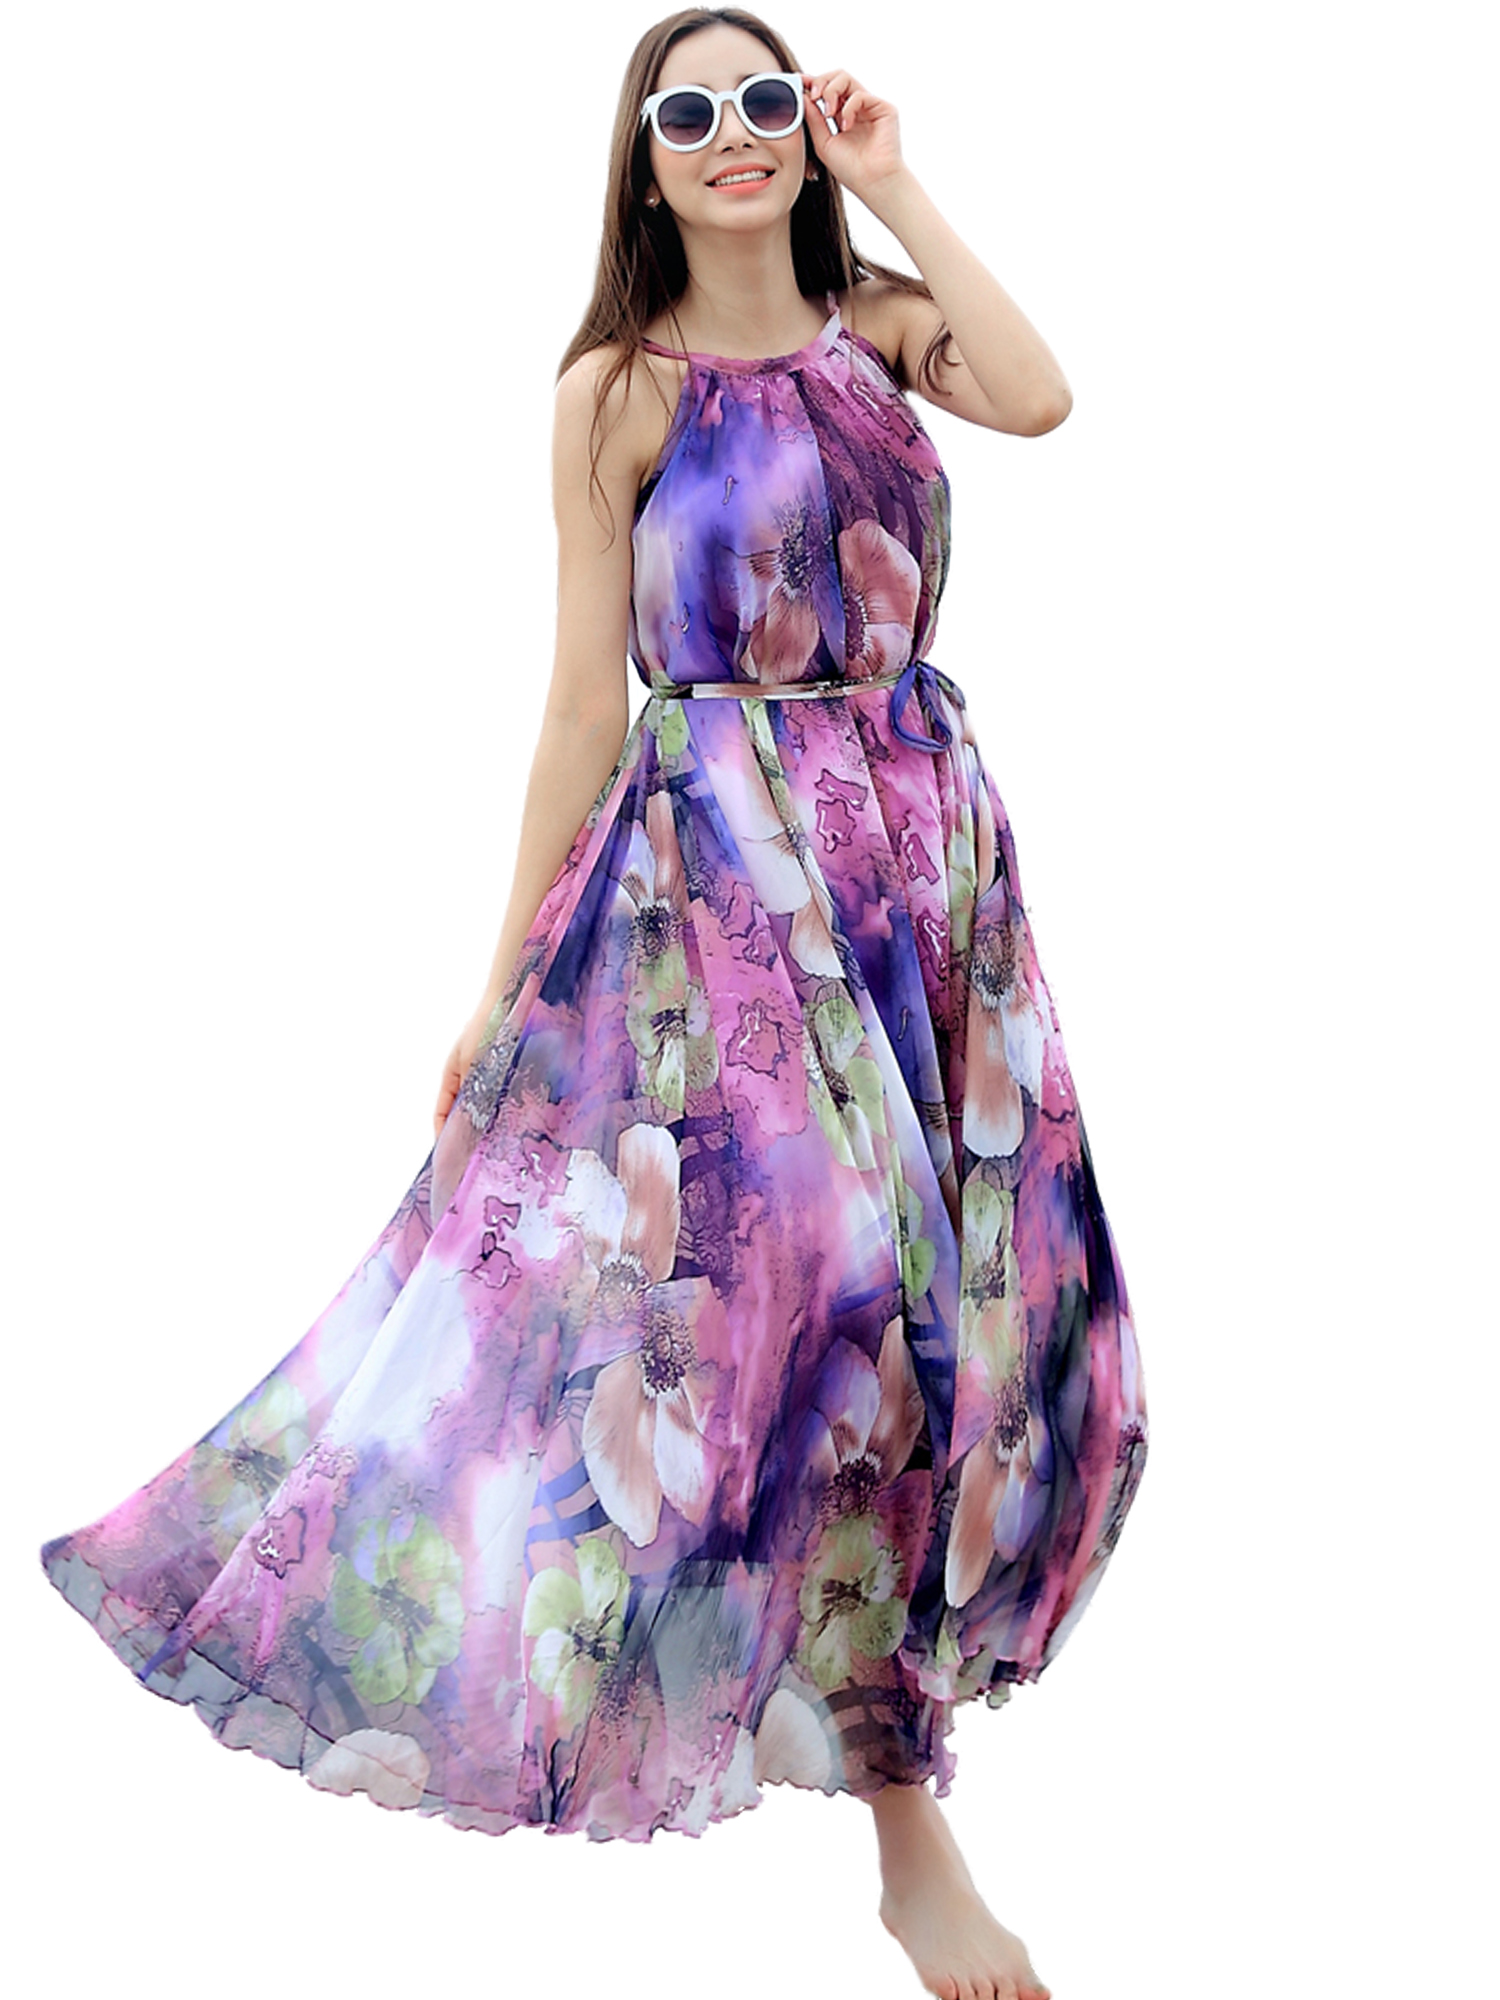 149e68ec05e Purple Floral Long Beach Maxi Dress Lightweight Sundress Plus Size Summer  Dress Holiday Beach Dress on Luulla